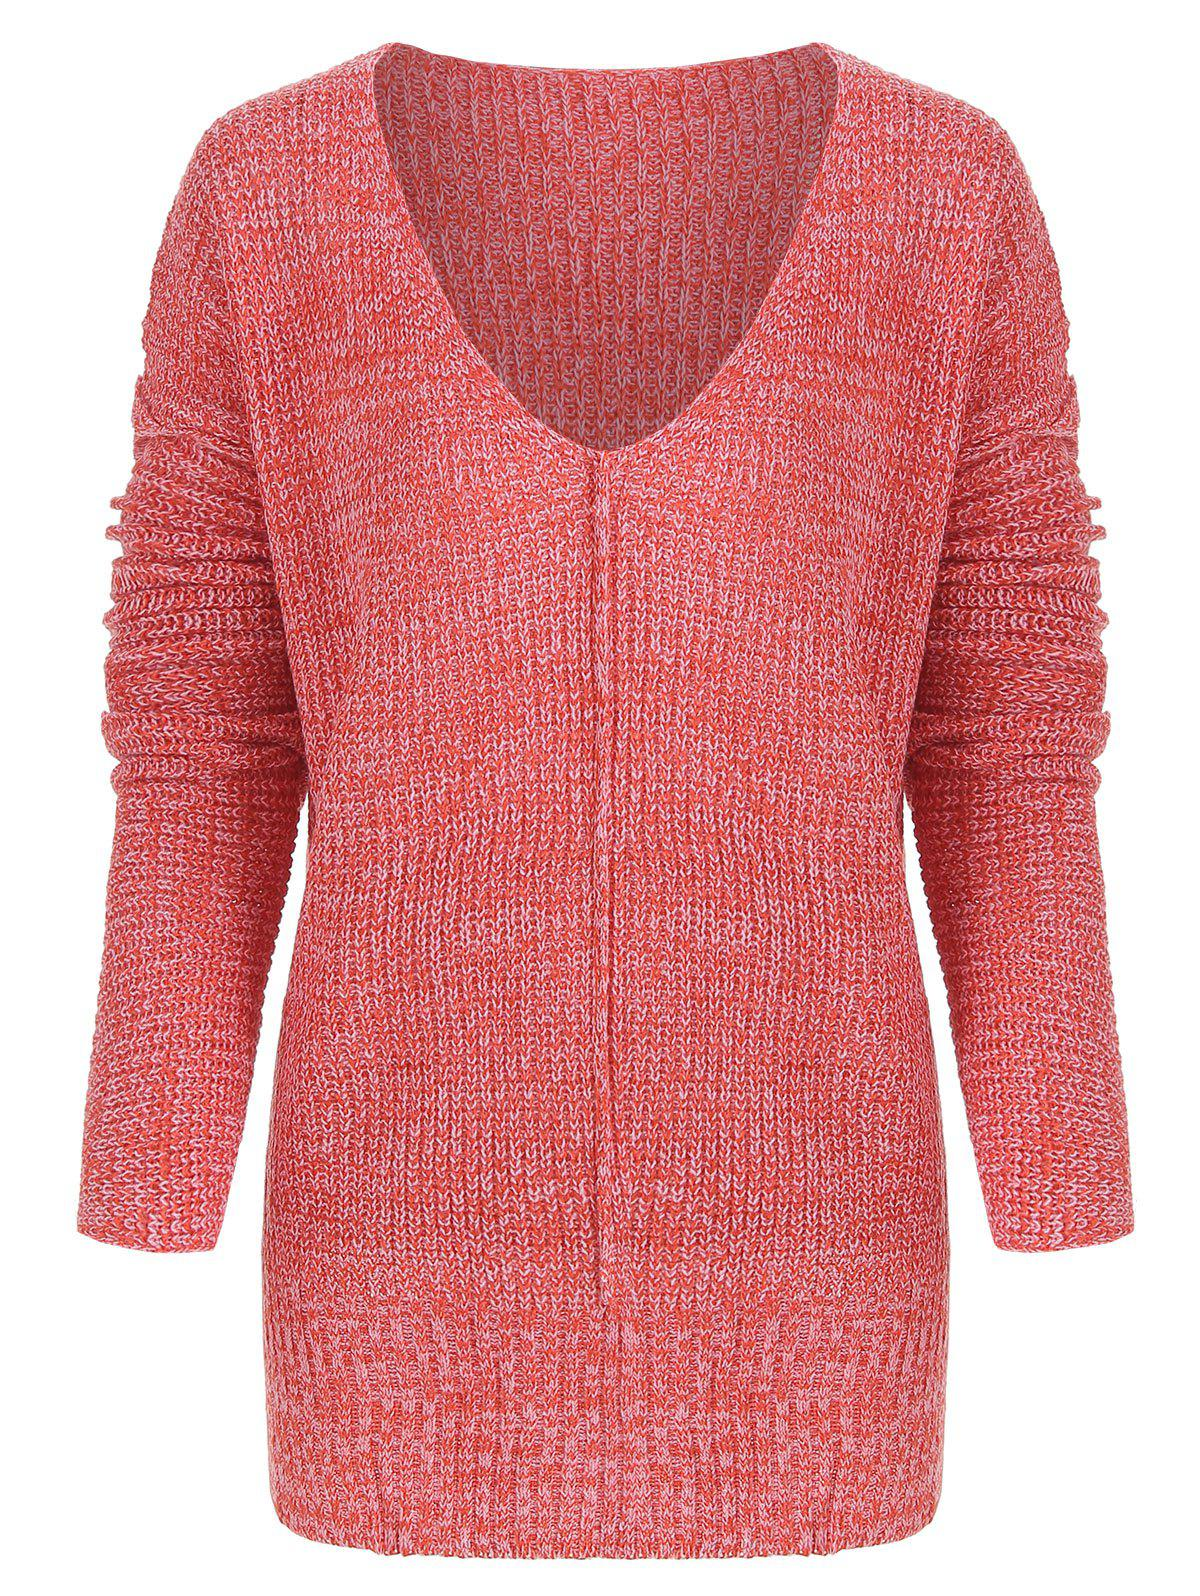 Chic V Neck Tunic Knitted Sweater